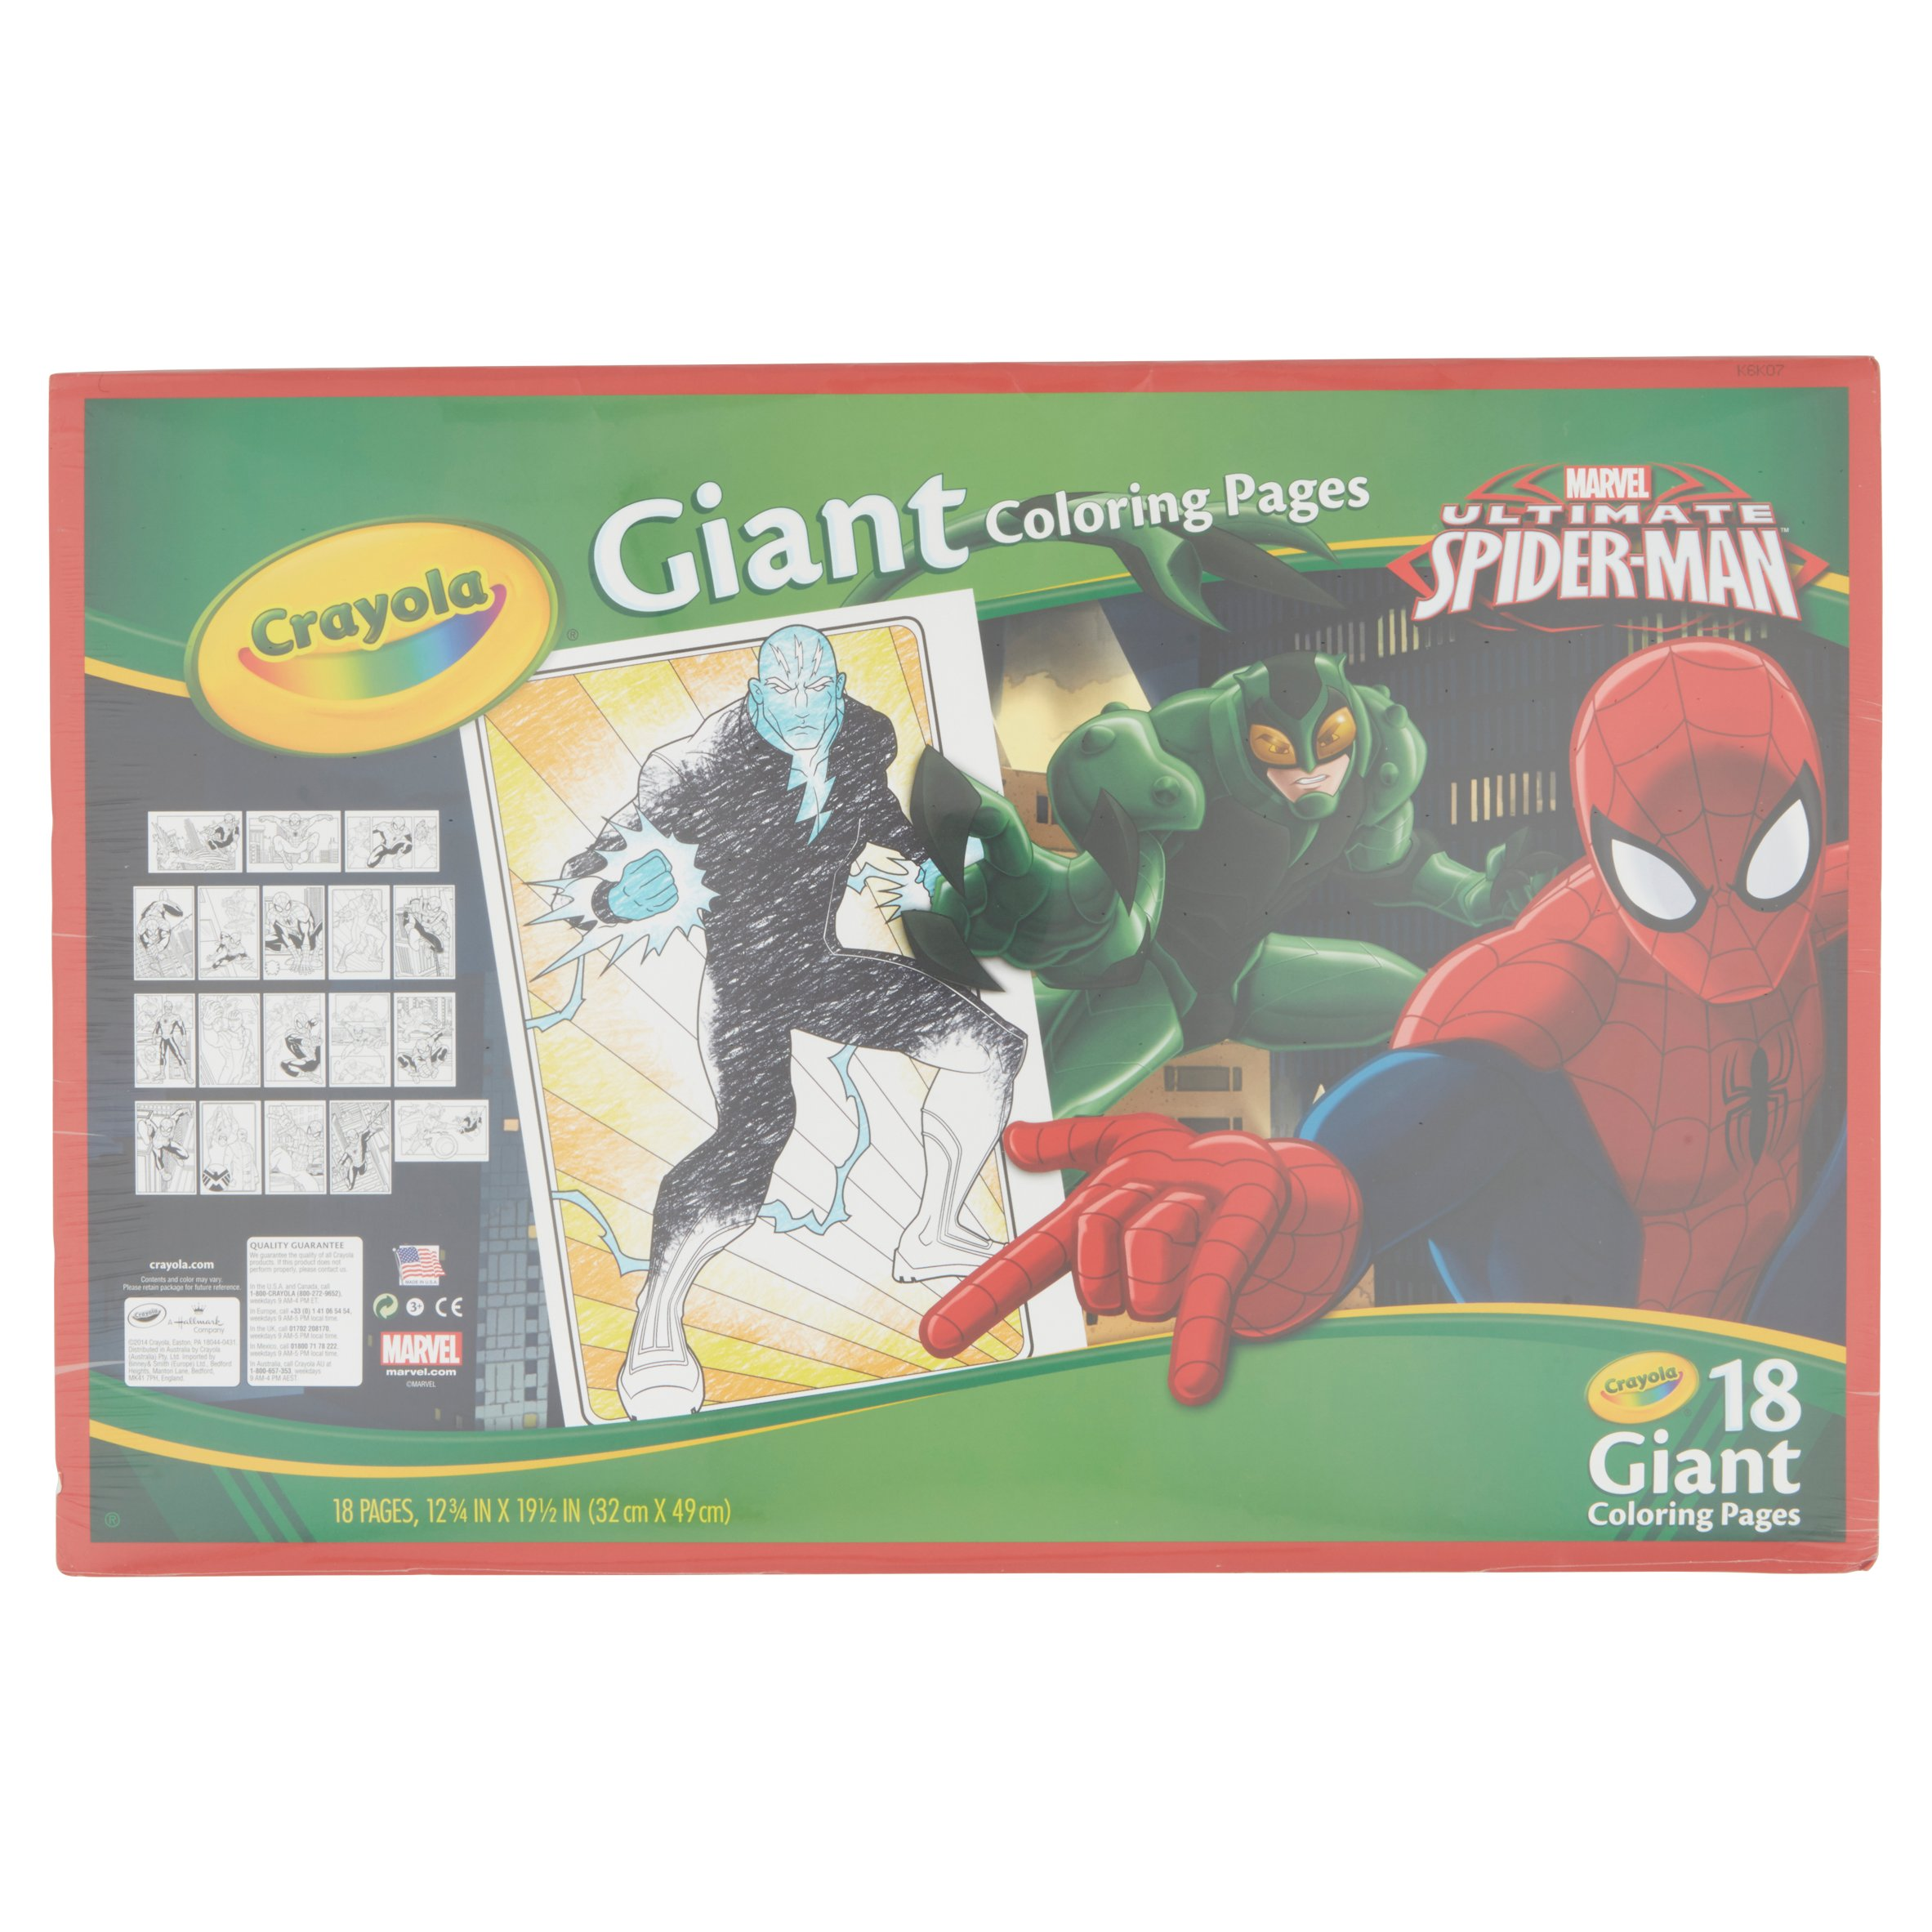 Crayola Giant Coloring Pages, Featuring Spiderman, 18 Pages ...